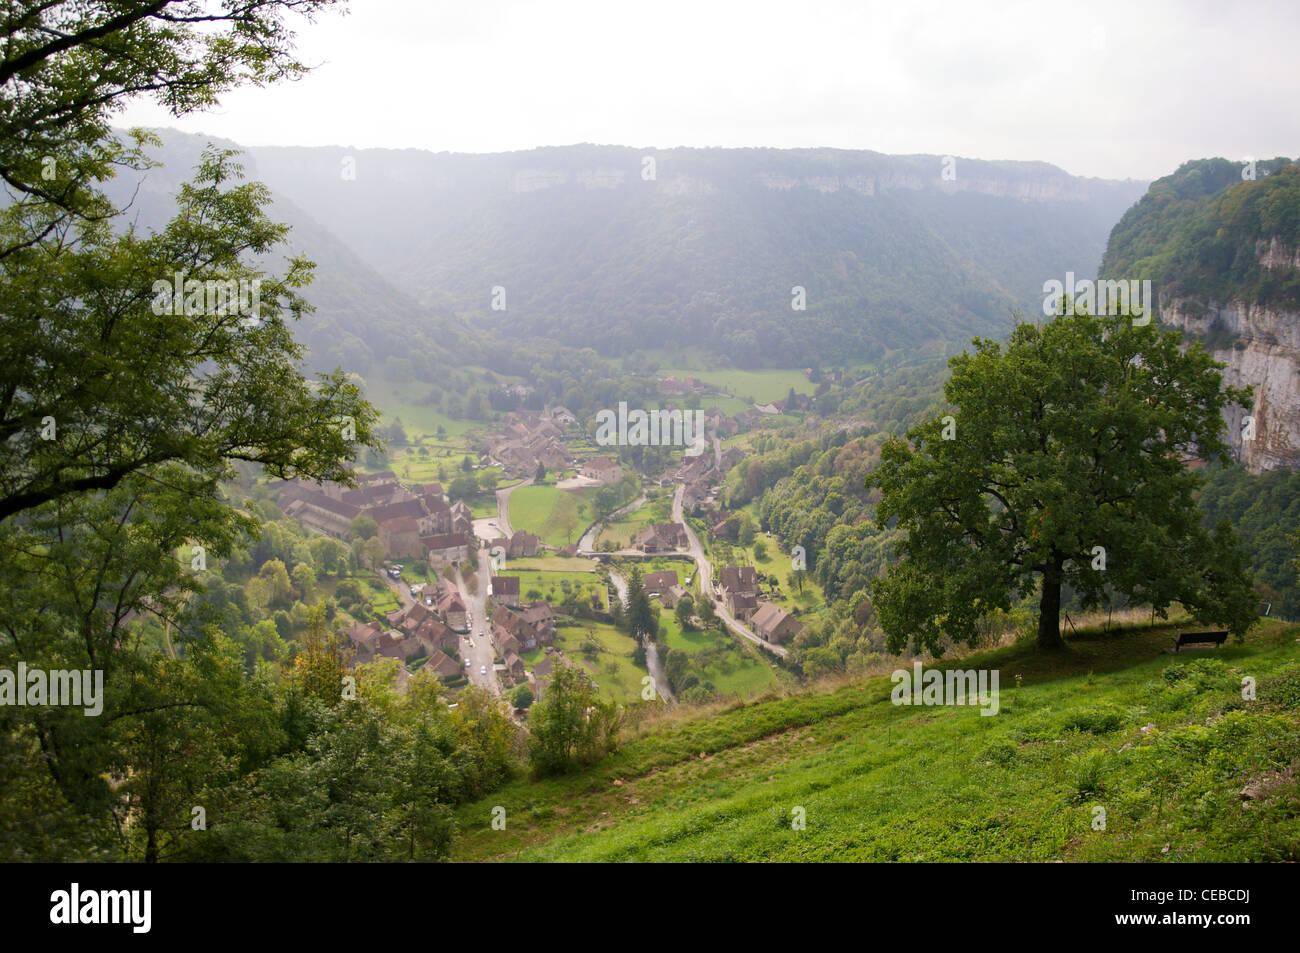 View of Baume-les-Messieurs with the Baume Abbey and the river Seille. - Stock Image